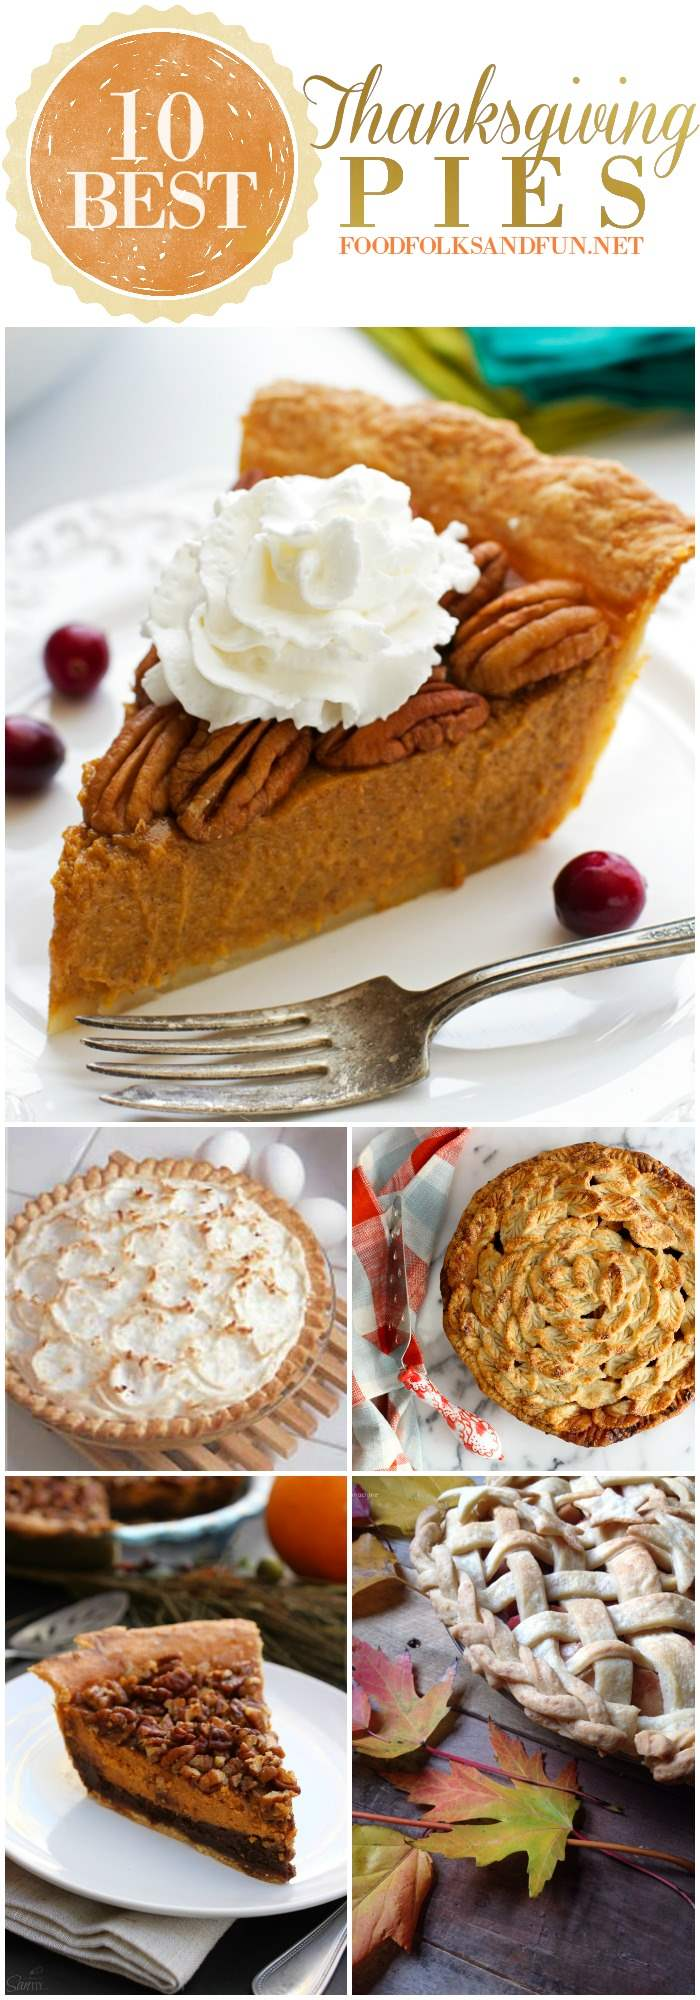 10 Best Thanksgiving Pie Recipes: This roundup has the best classic recipes plus some new and improved ones, too!